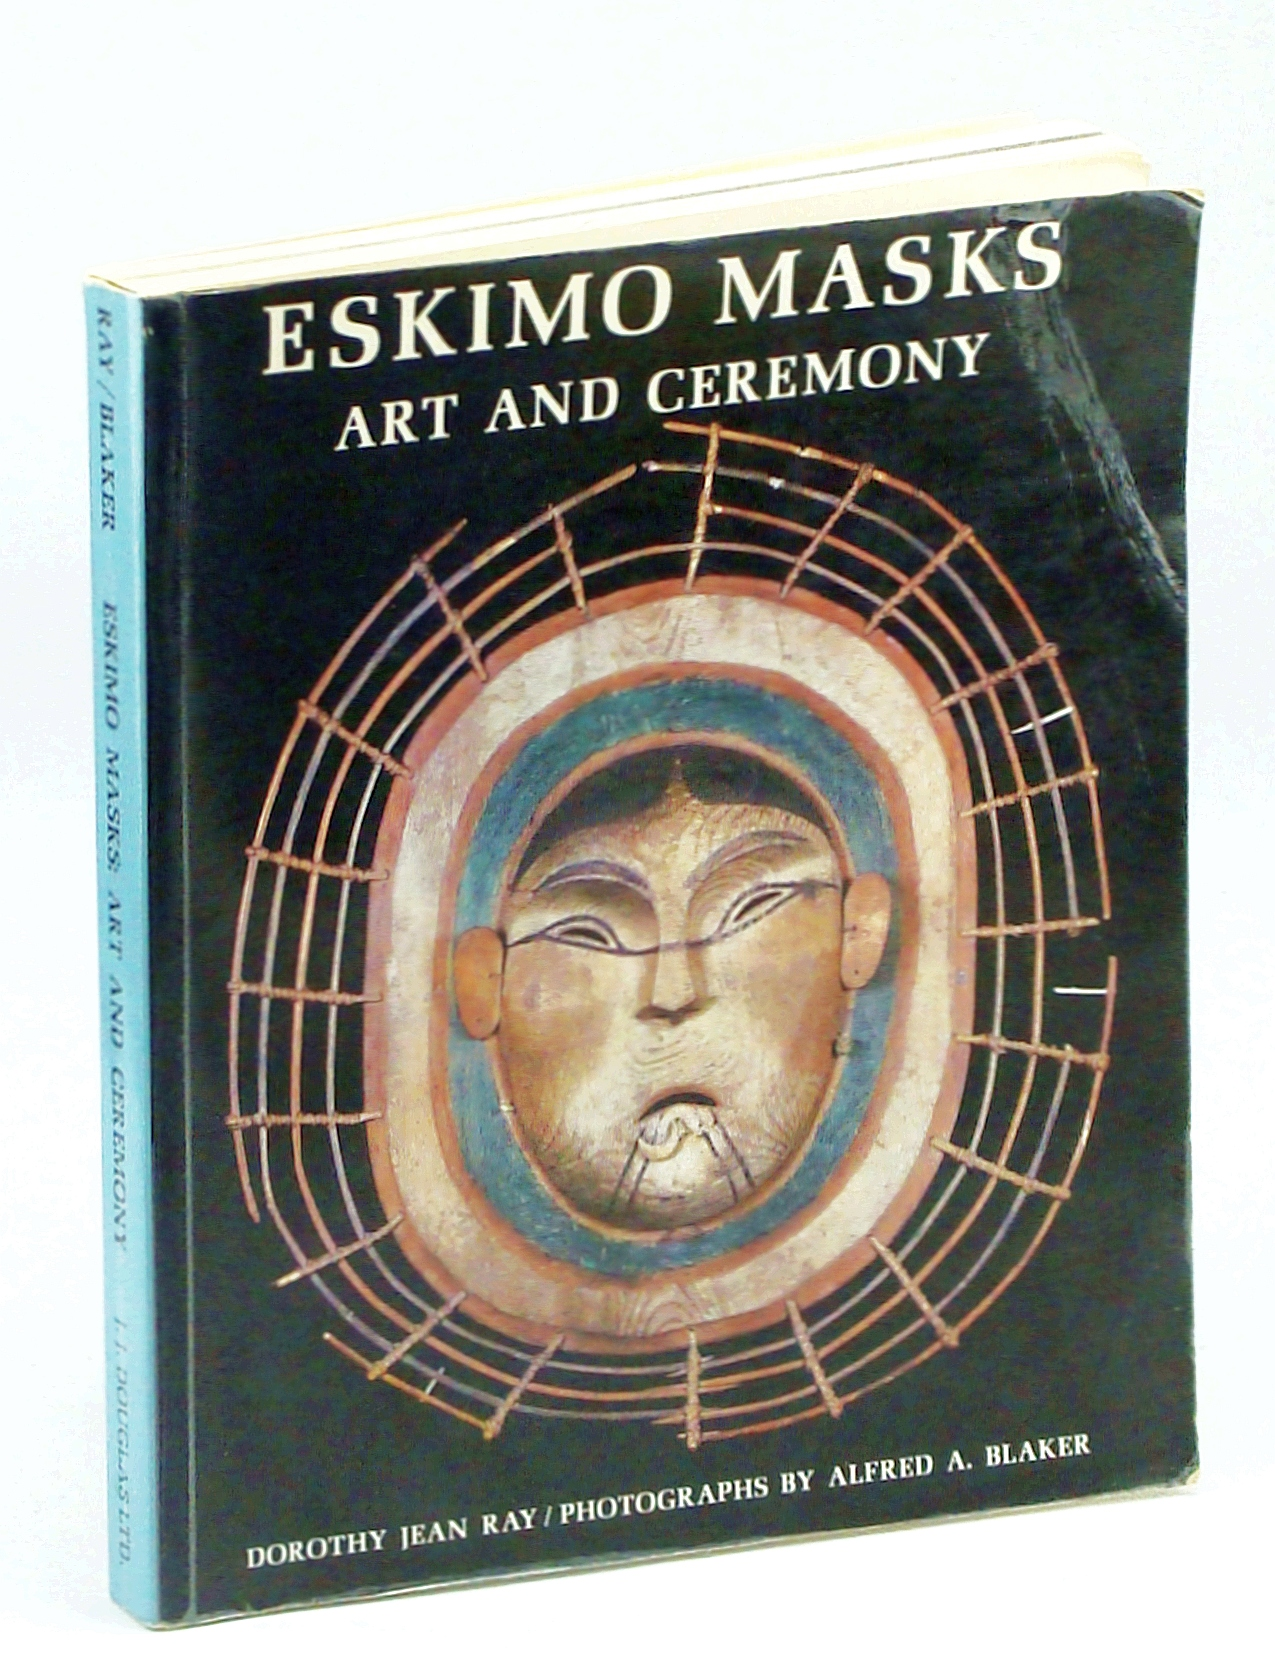 Image for Eskimo Masks. Art and Ceremony.